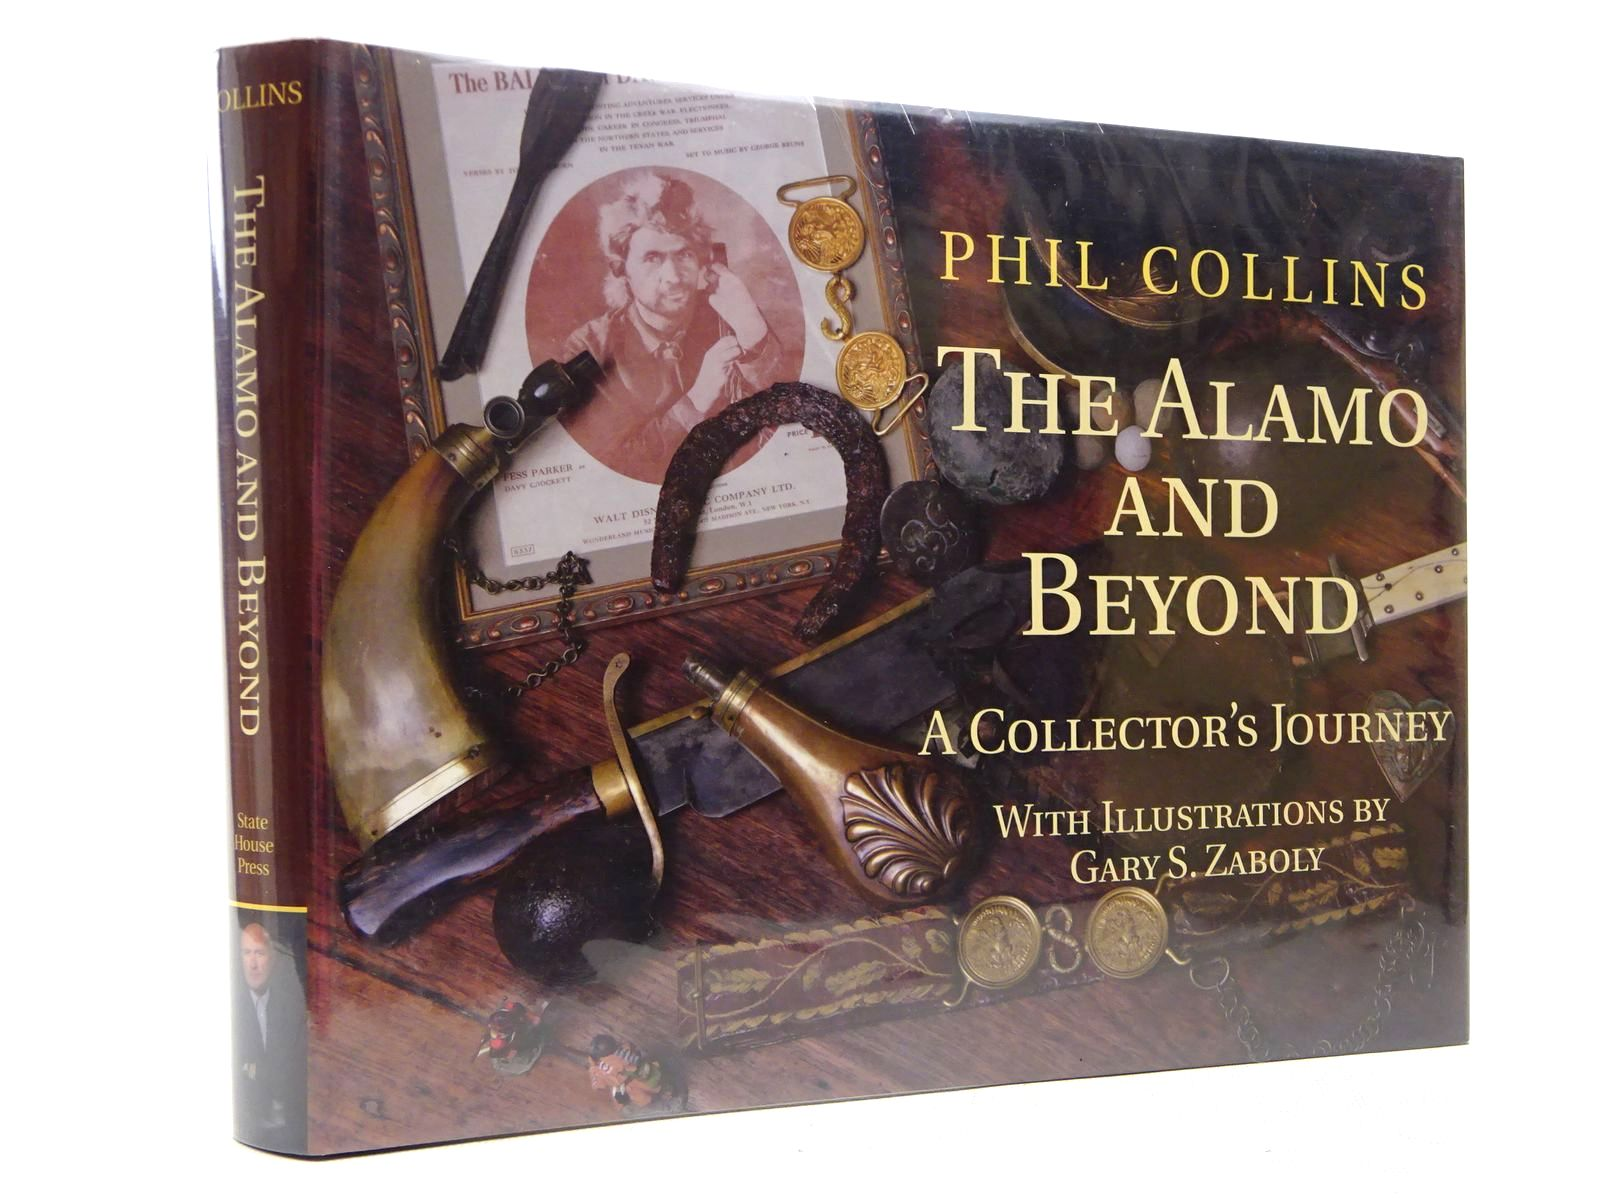 Photo of THE ALAMO AND BEYOND A COLLECTOR'S JOURNEY written by Collins, Phil illustrated by Zaboly, Gary S. published by State House Press (STOCK CODE: 2129121)  for sale by Stella & Rose's Books